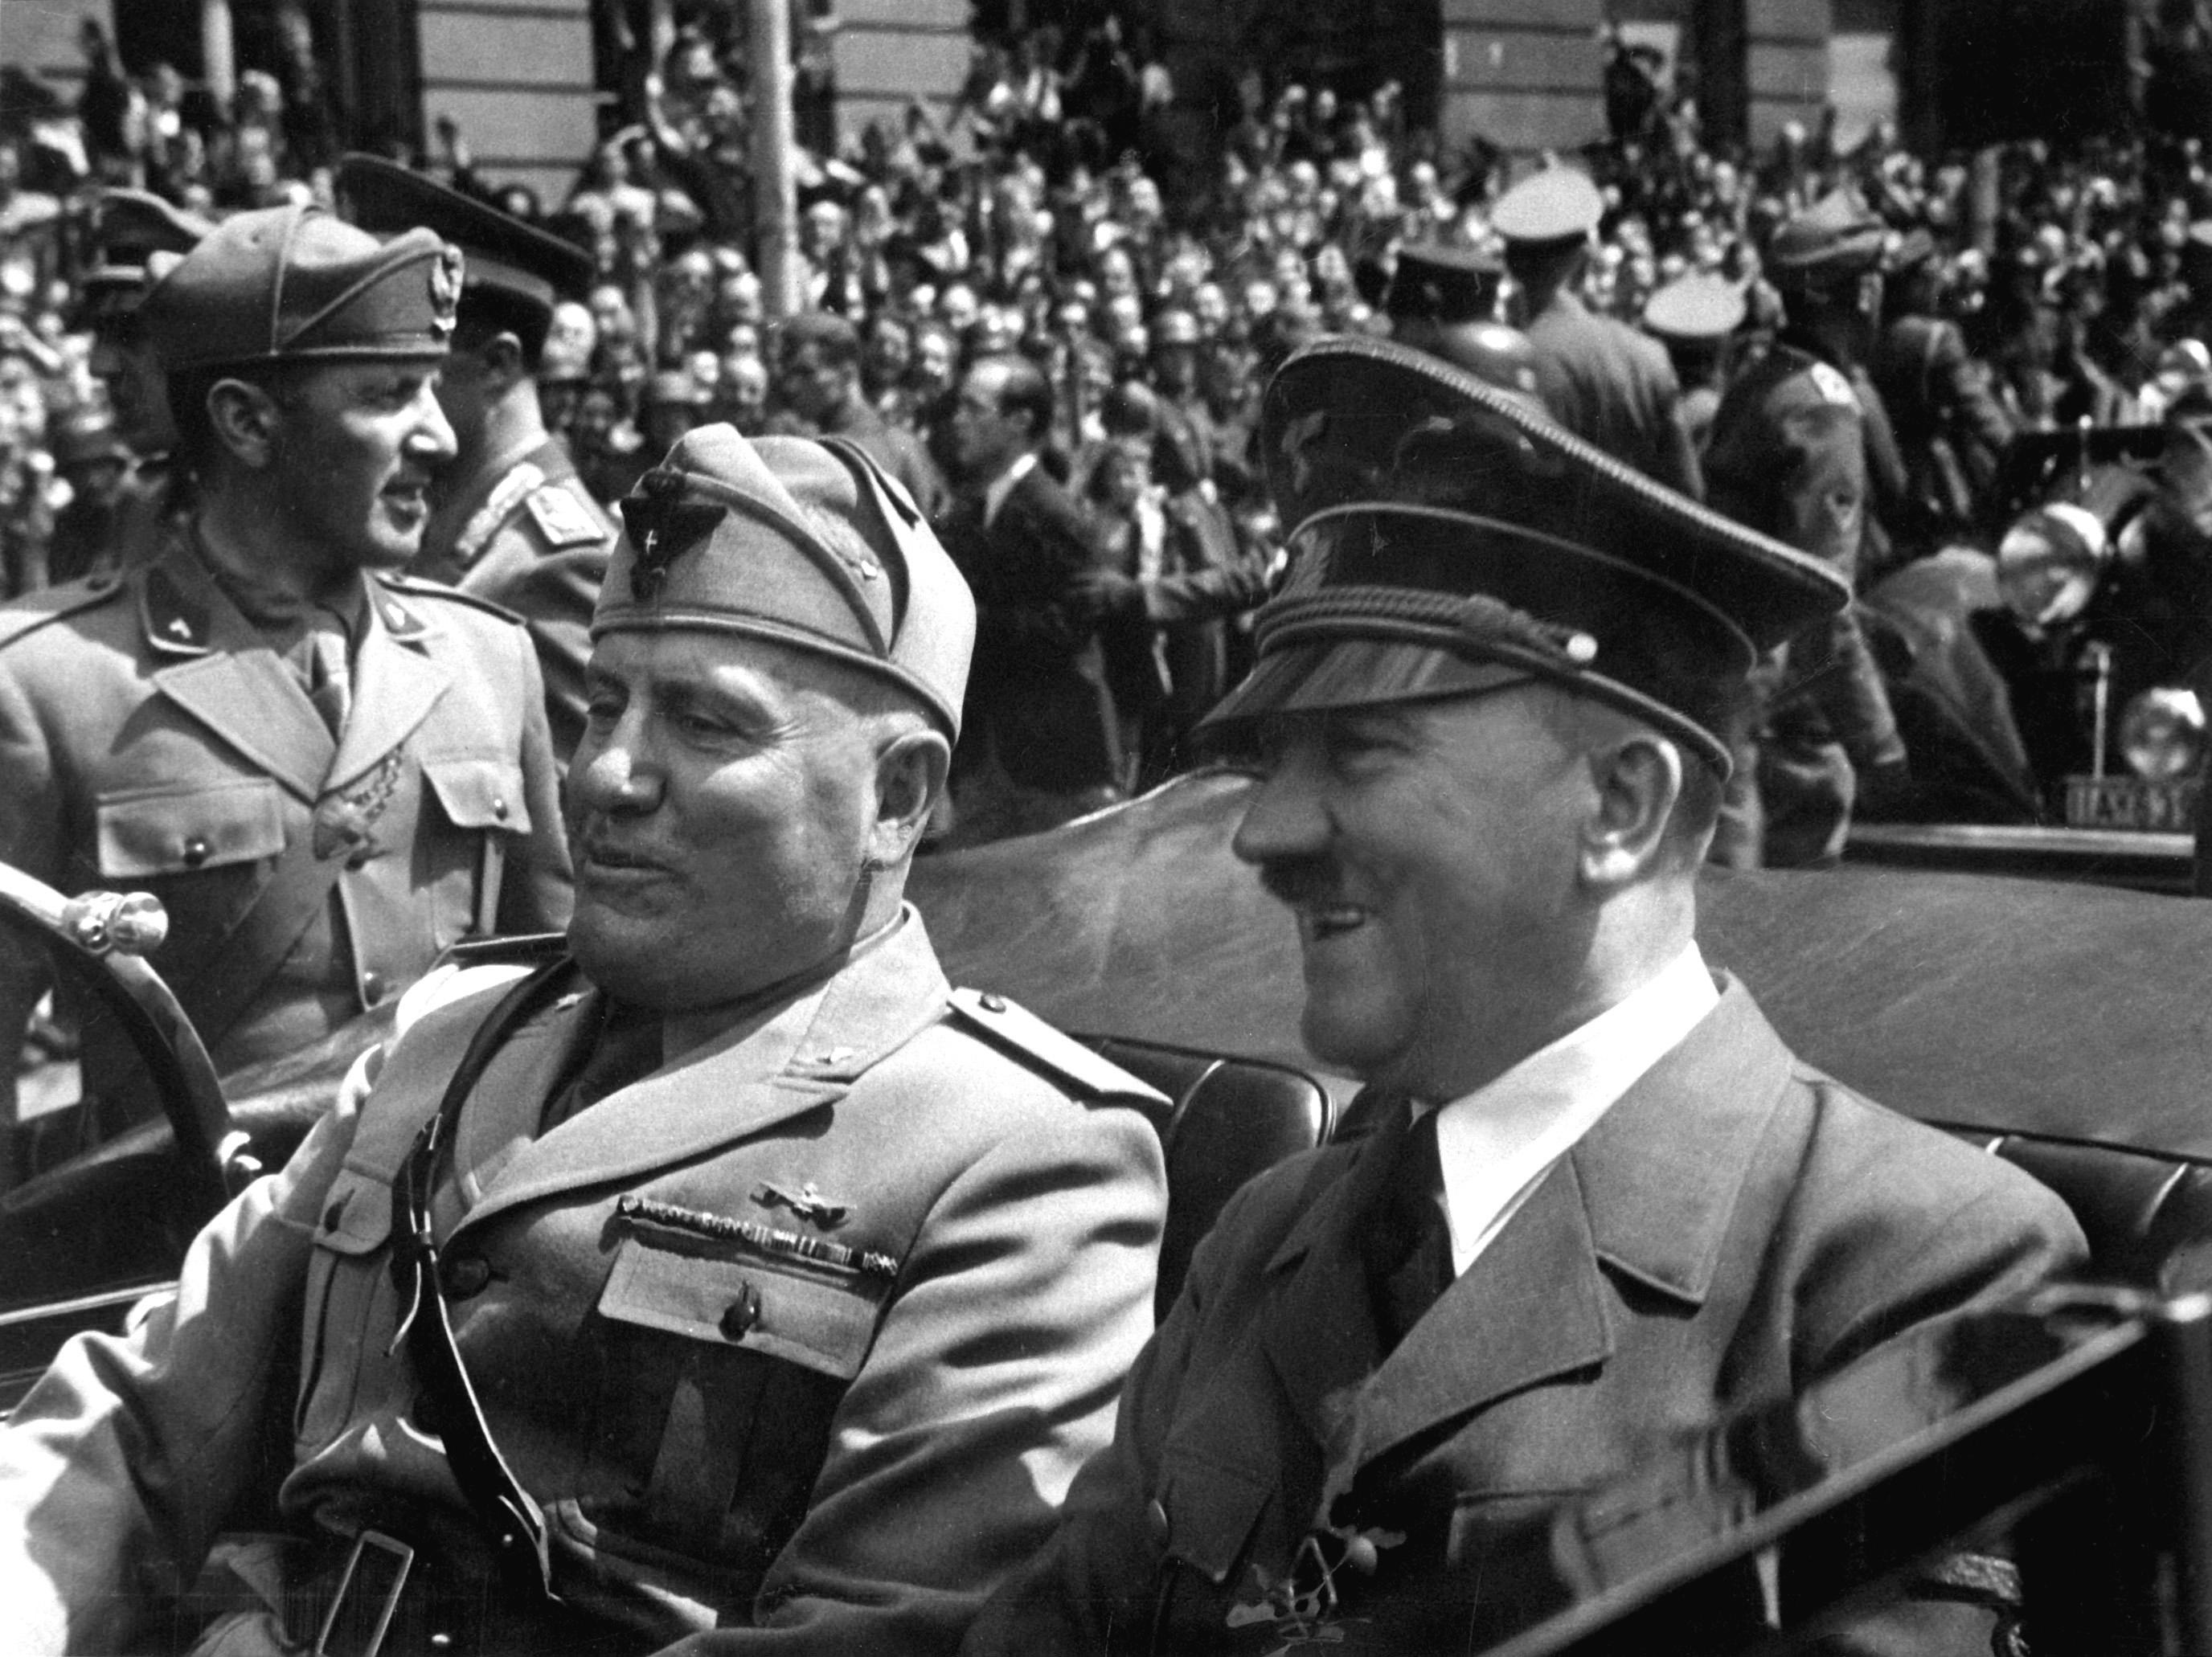 Benito Mussolini (left) and Adolf Hitler (right) riding through the streets of Munich, Germany, in 1940. Mussolini (Italy) and Hitler (Germany) formed an Axis in 1936.